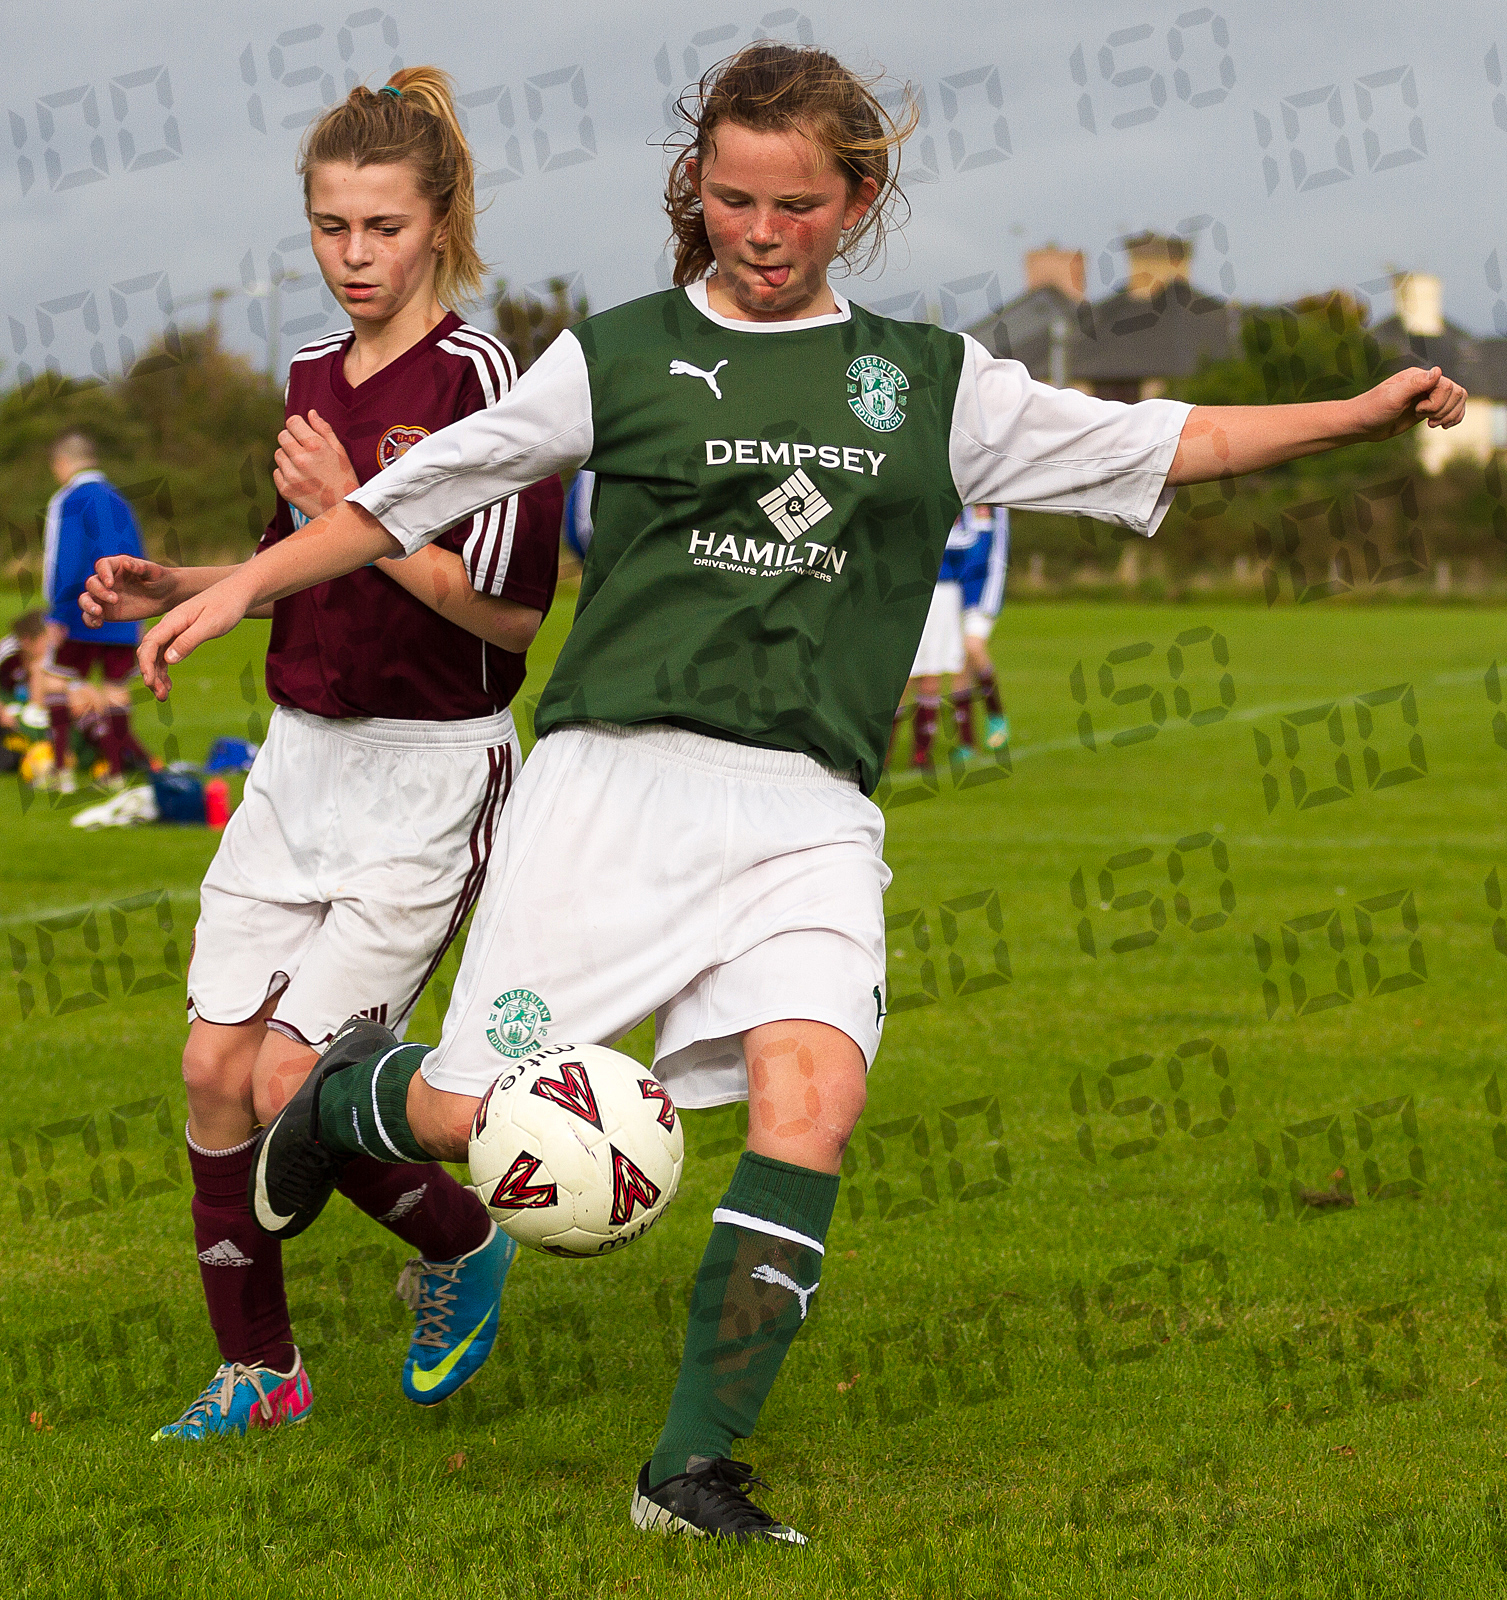 Hibs_v_Hearts_girls_13s-20.jpg